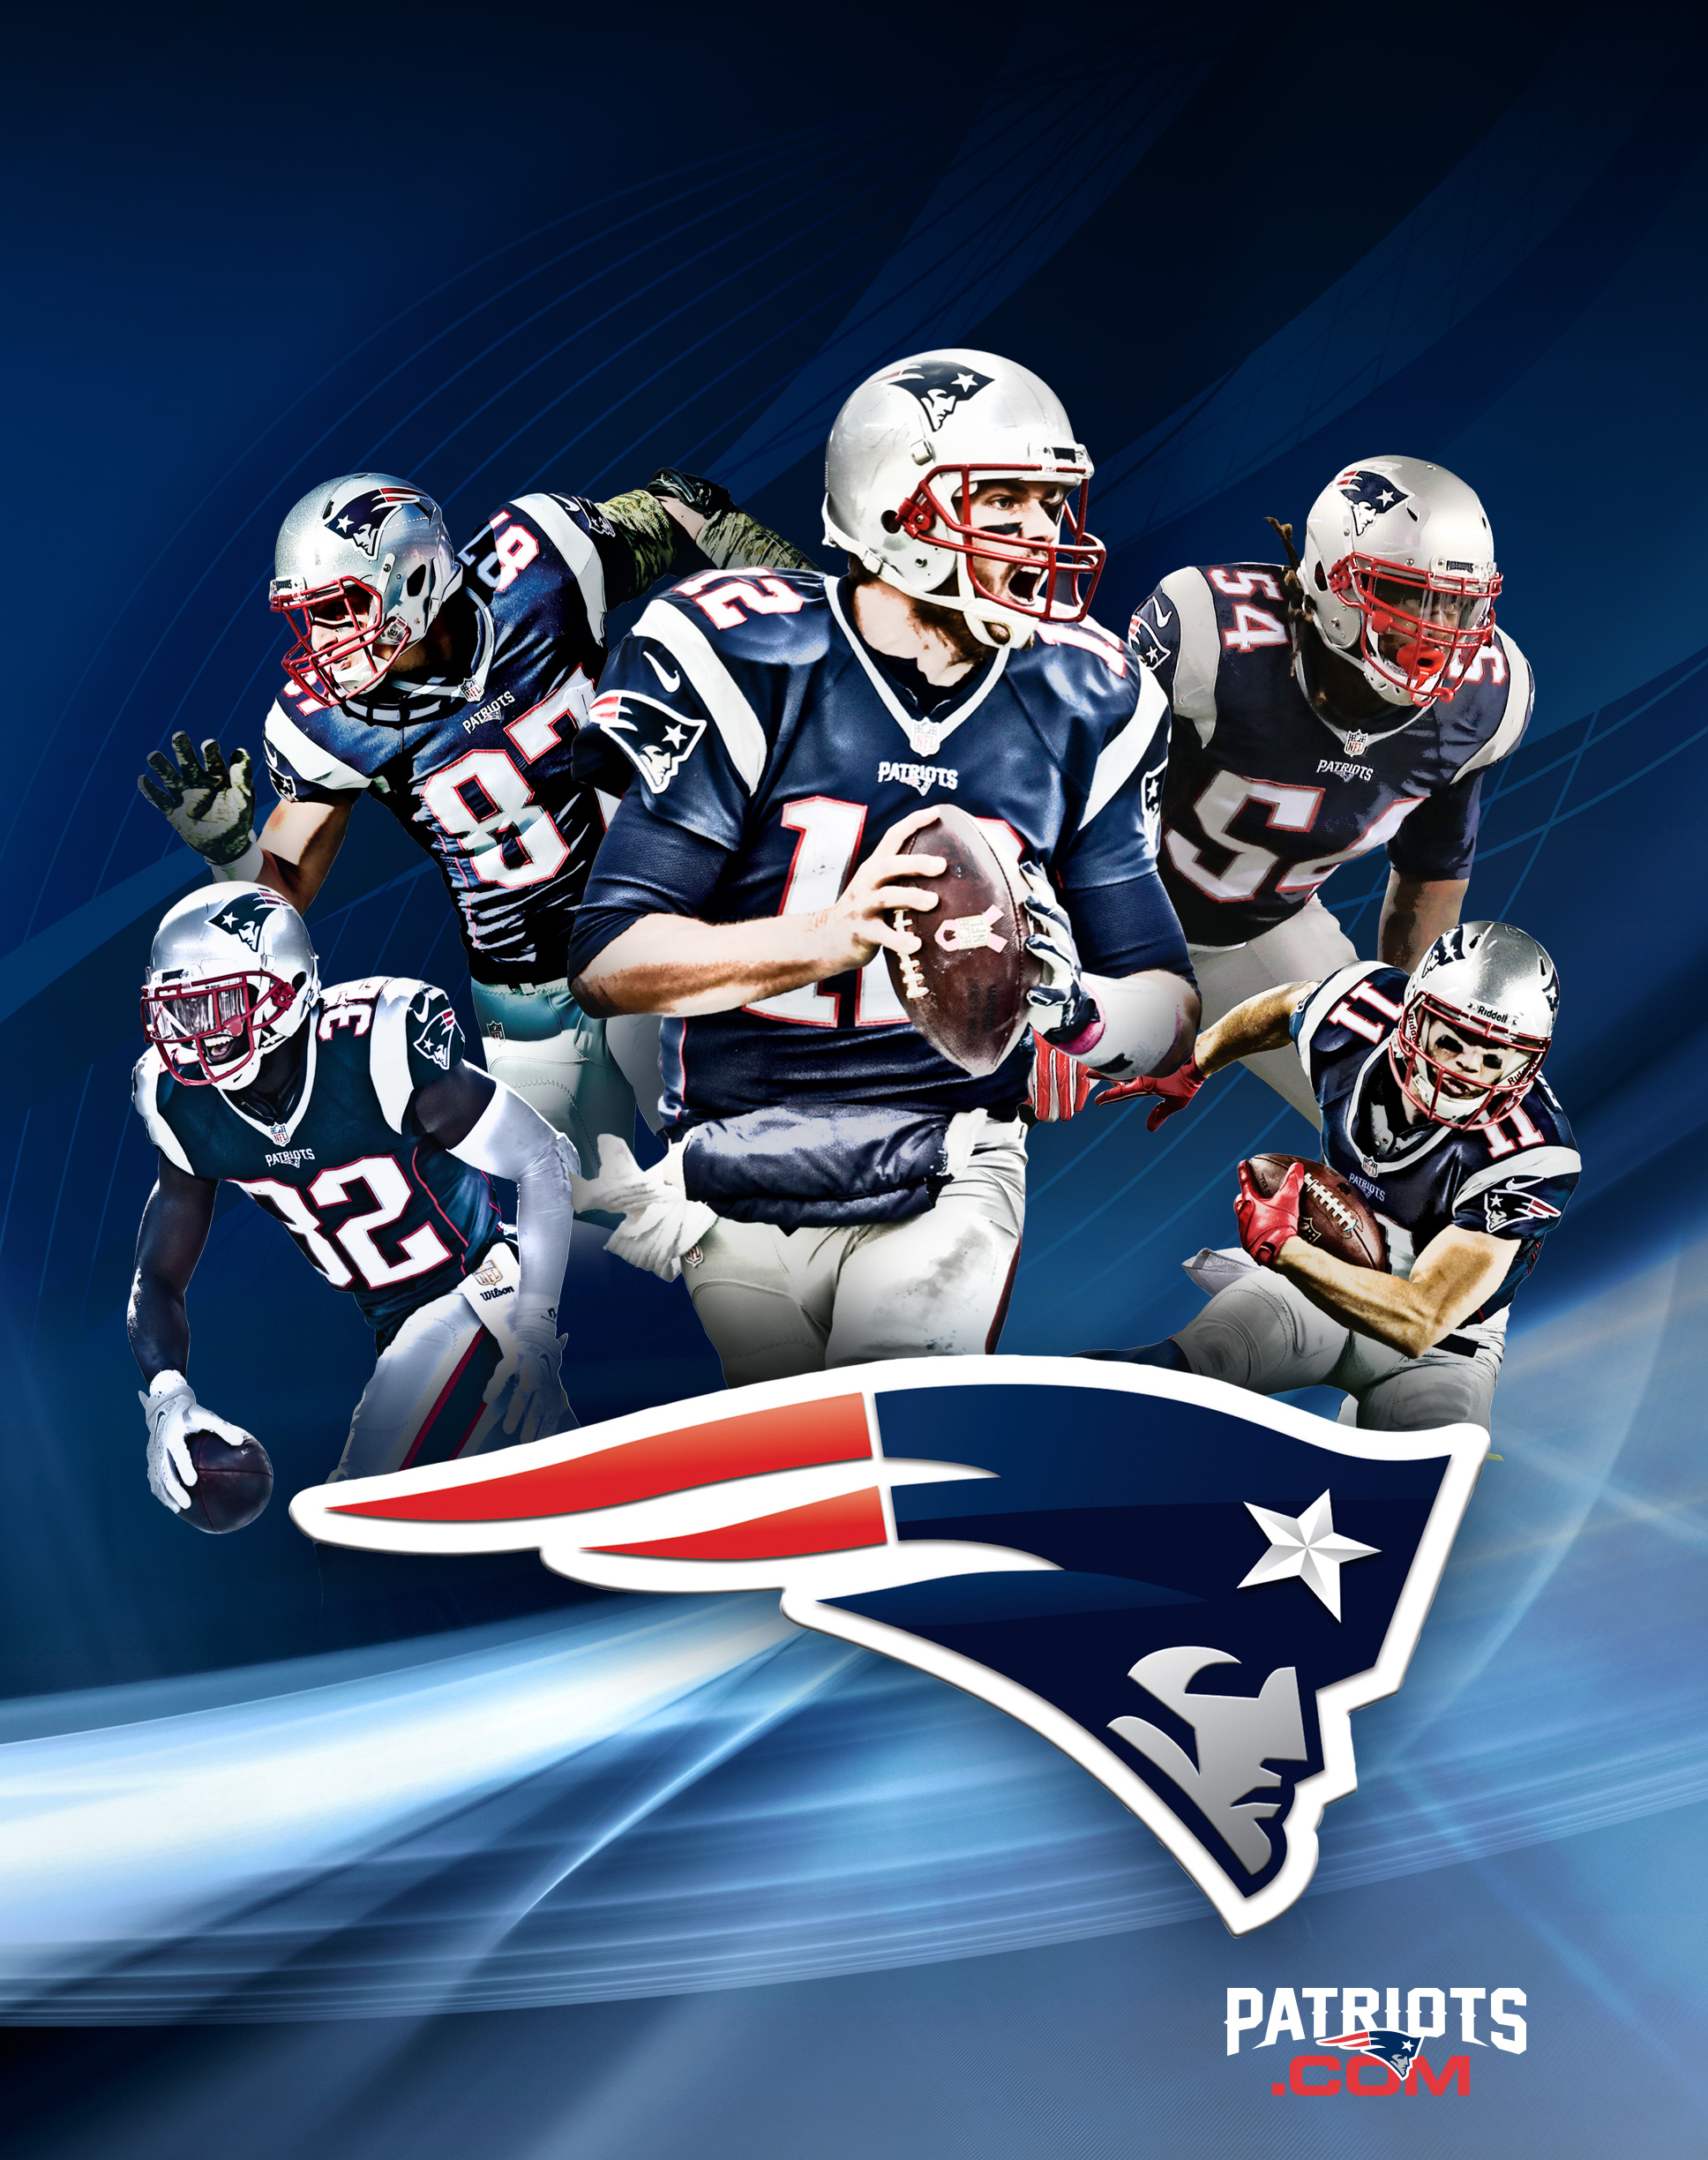 Free Nfl Wallpapers For Android Phones 33 Dzbc Org